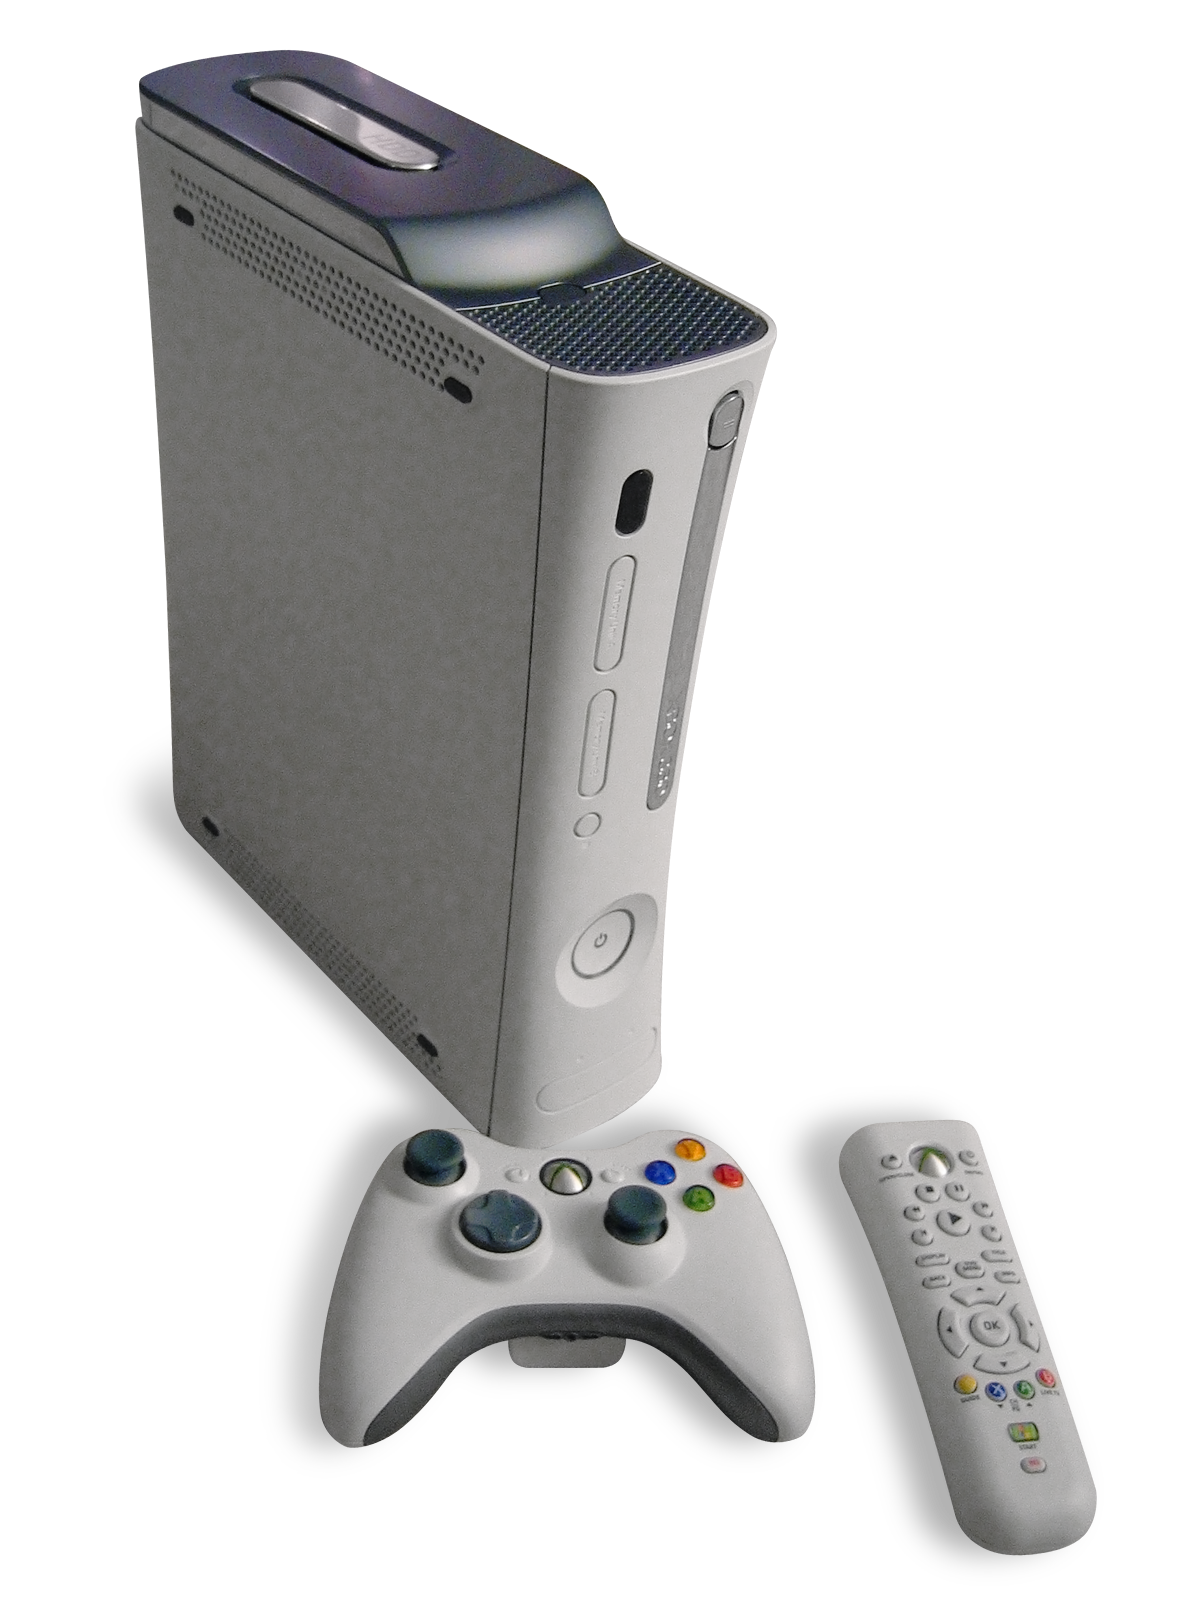 File:Xbox360.png - Xbox 360 PNG